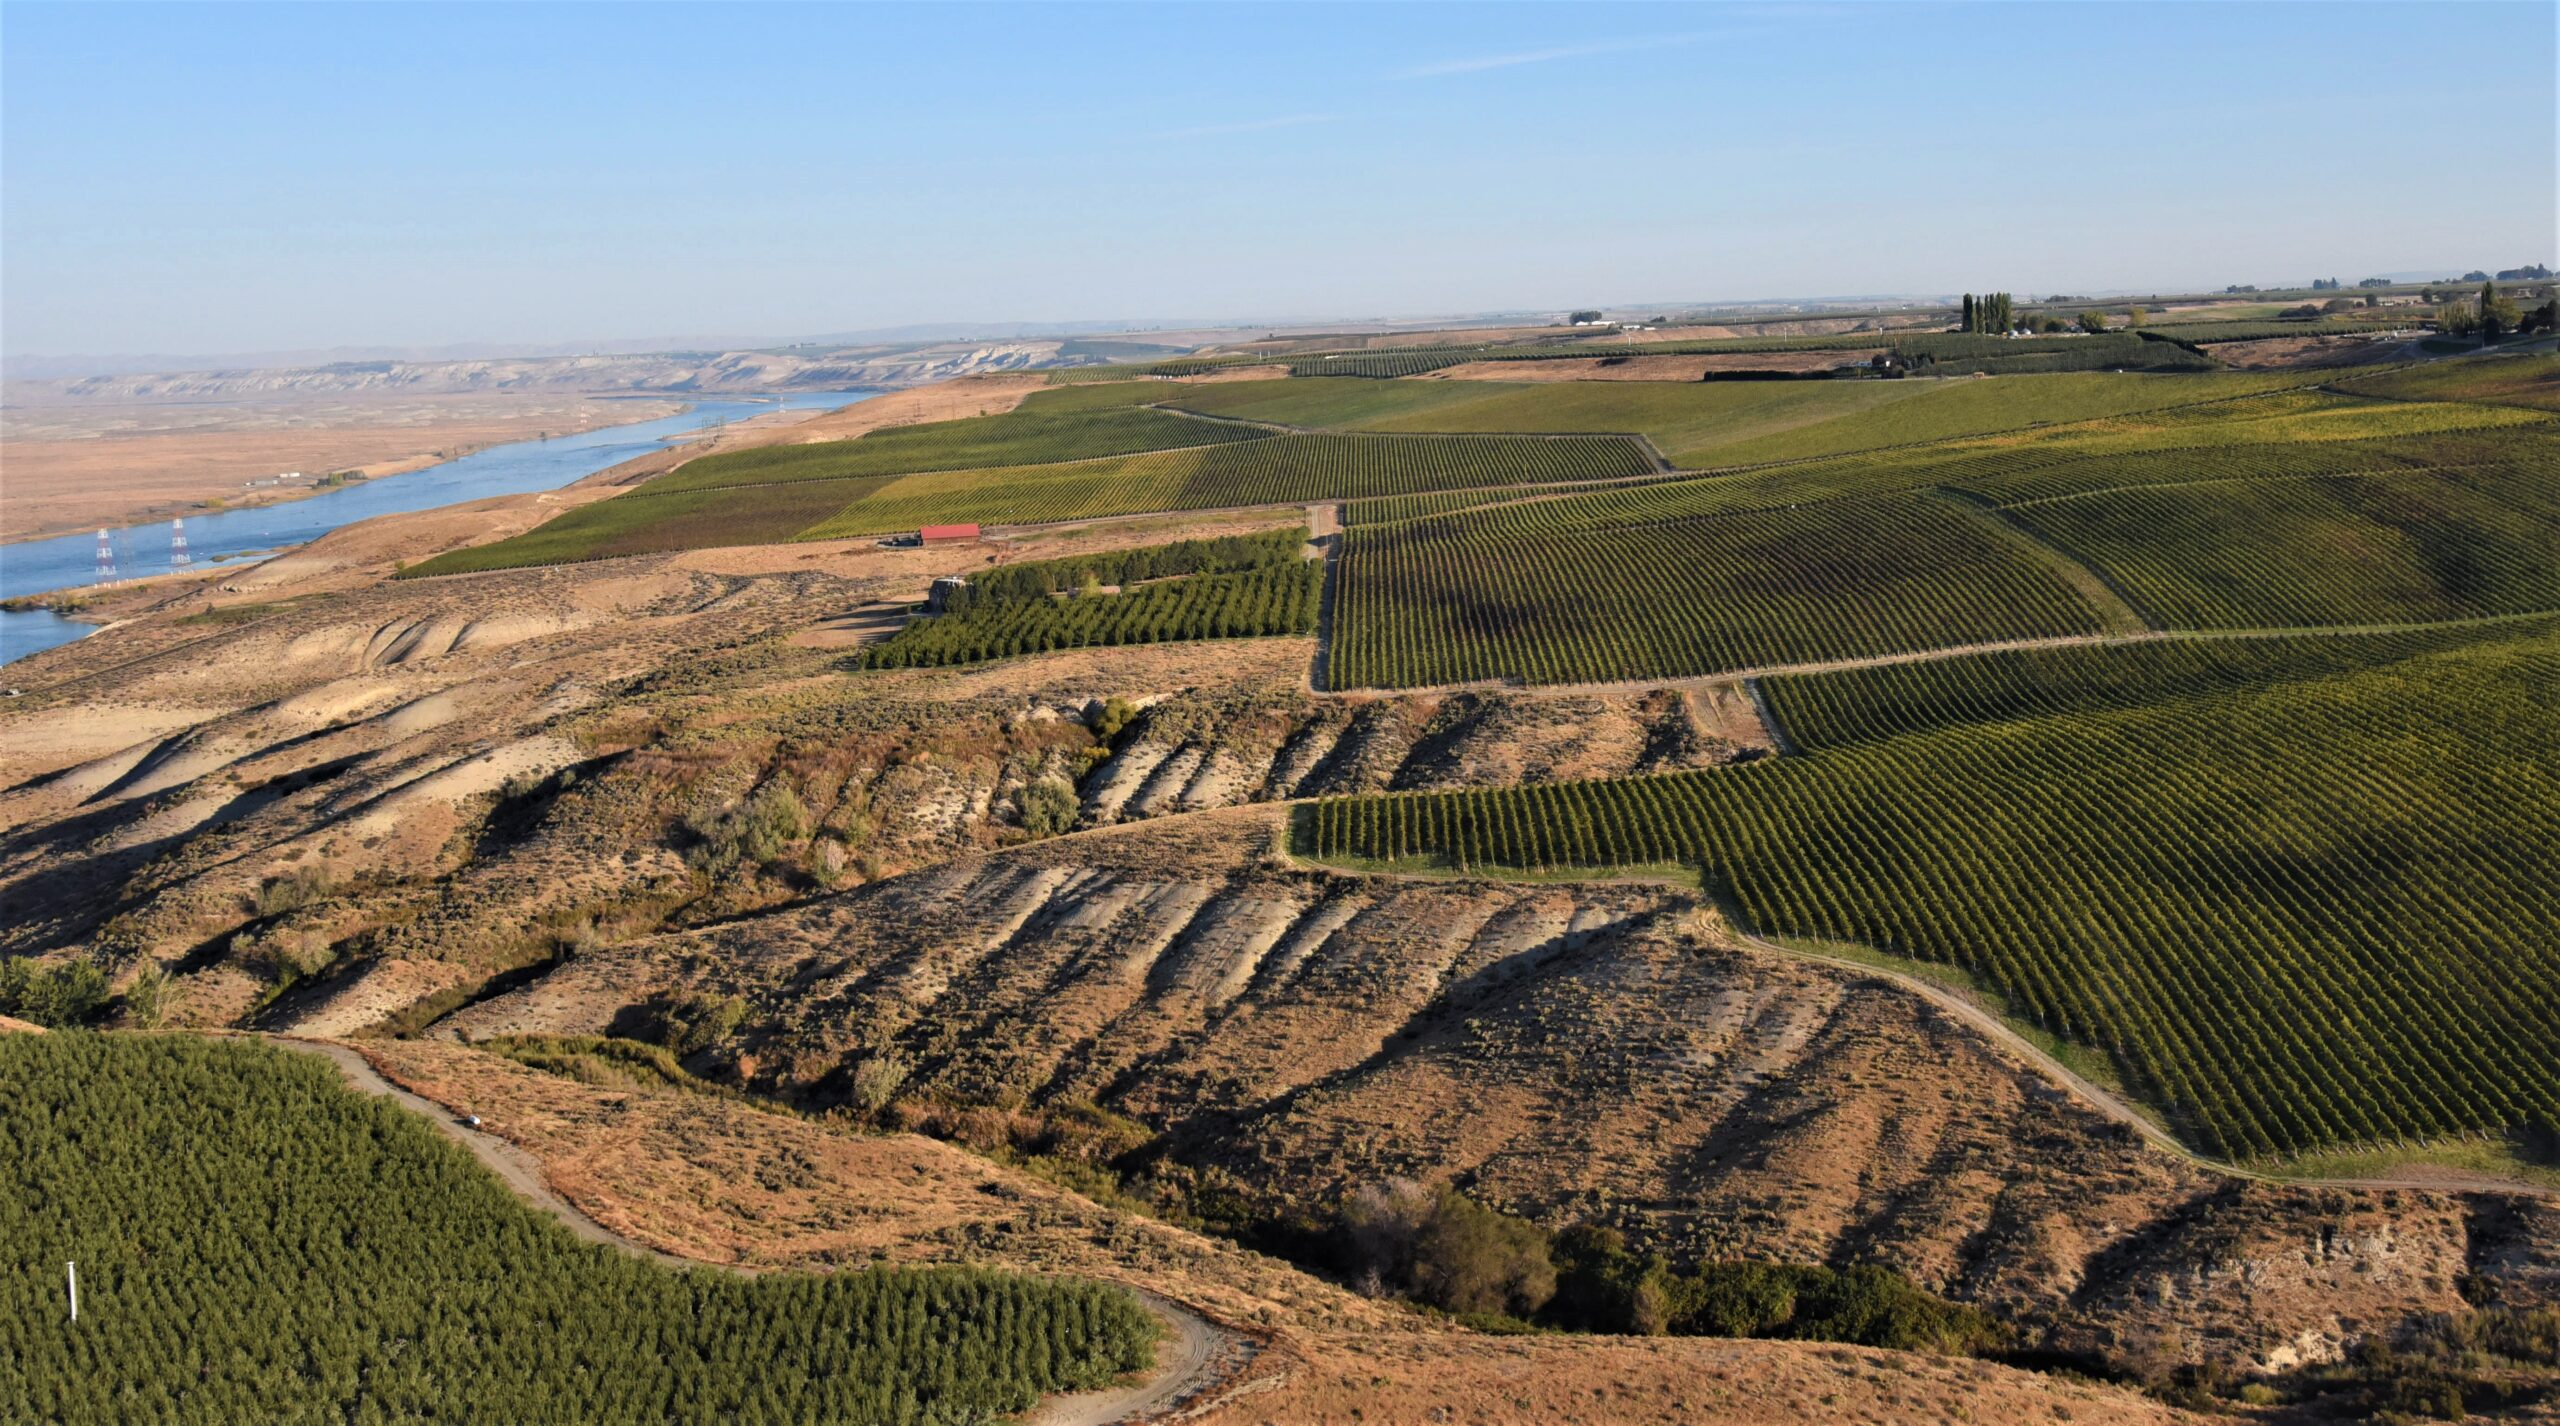 Aerial view of blocks of vineyards in neat rows, cut by a creek bed cut with dry gullies. A broad river is in the distance to the left and the sky above is hazy light blue.